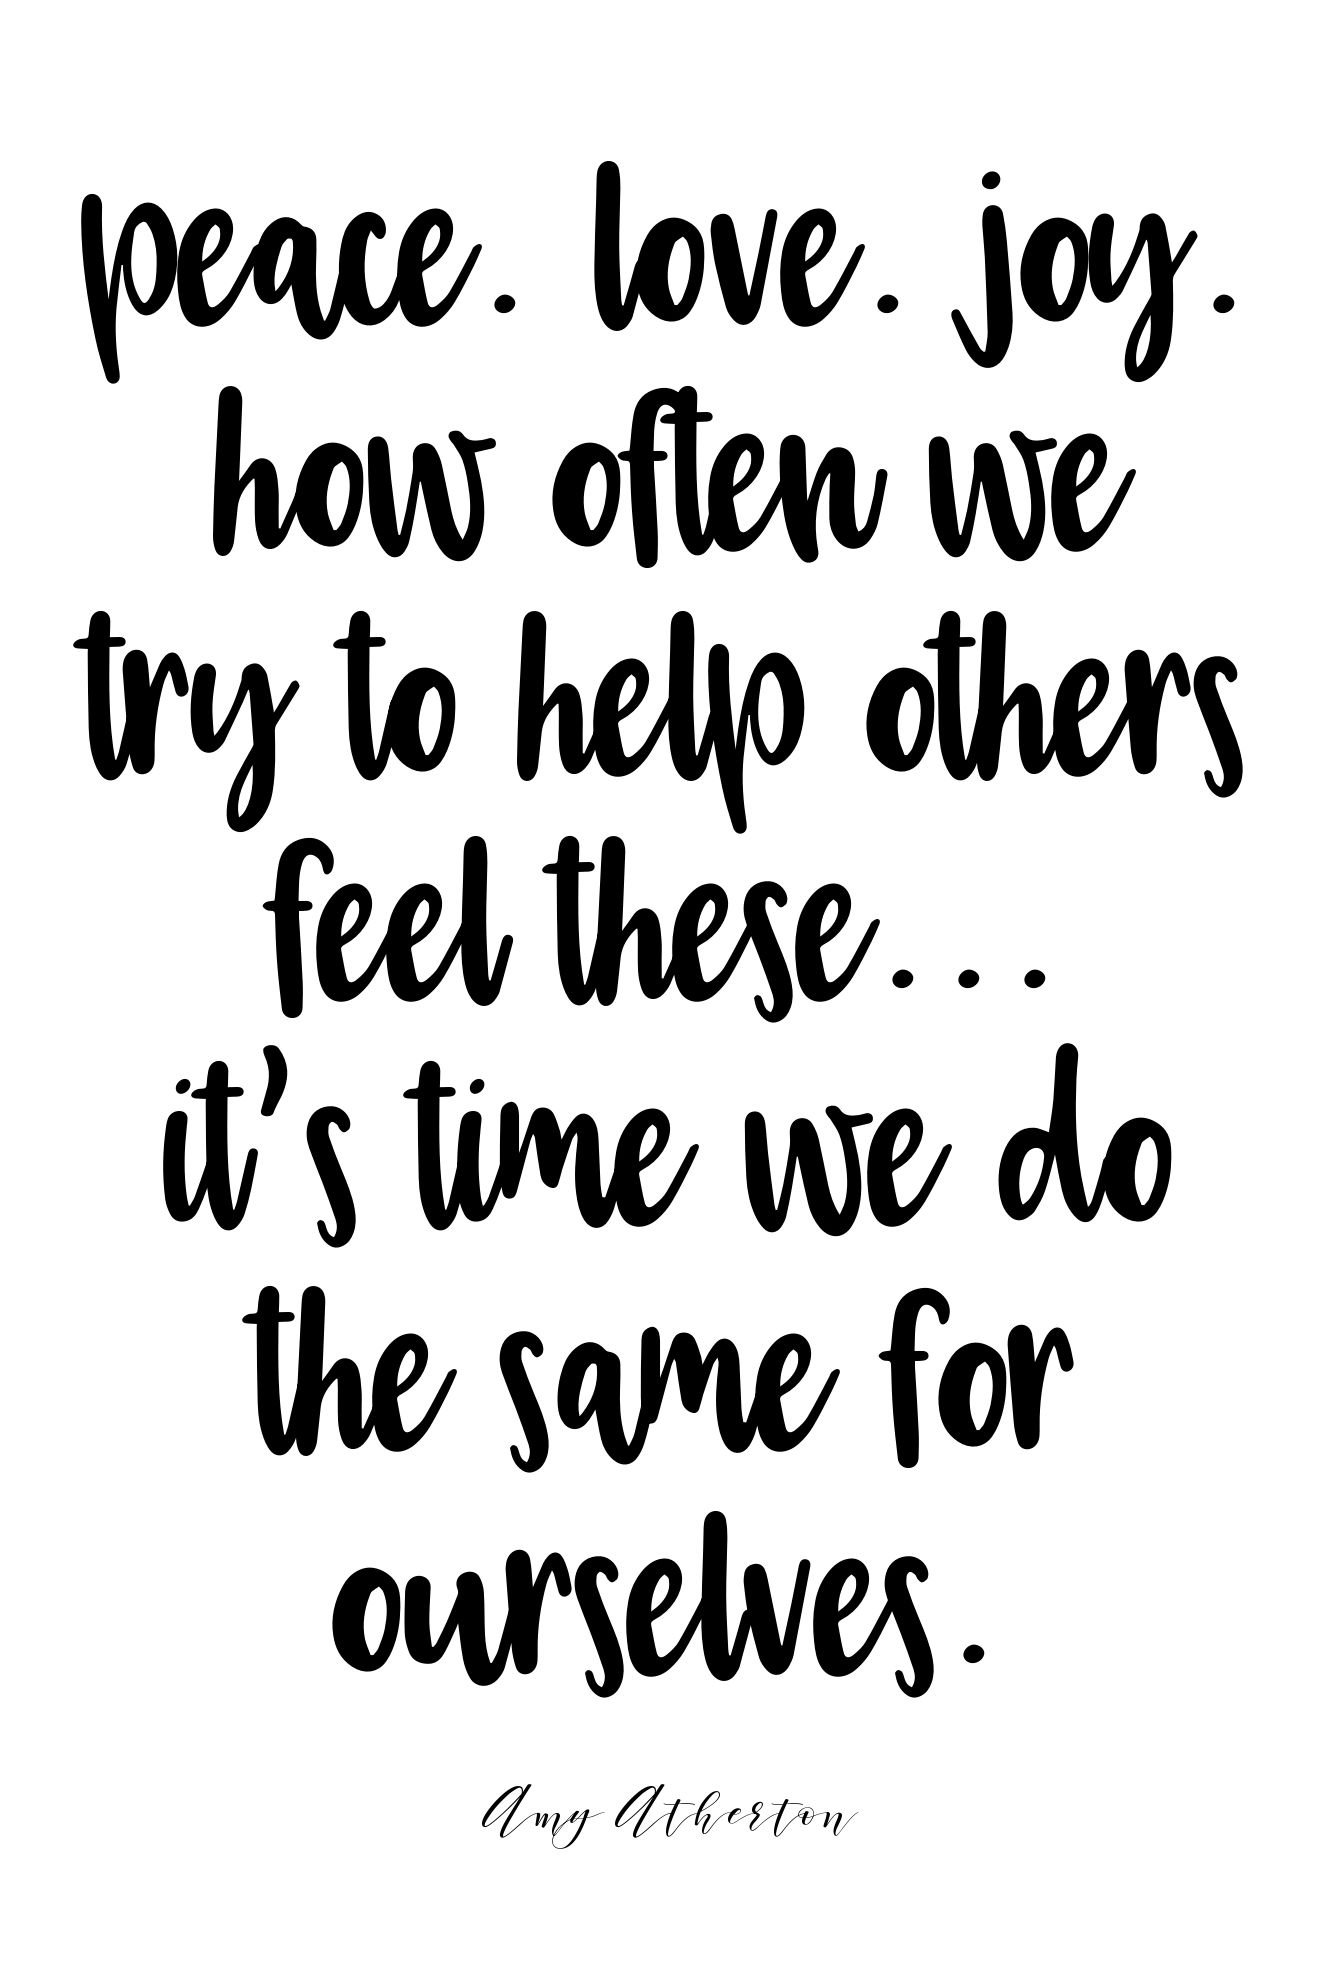 Peace Love Joy Quotes Glamorous Peacelovejoyhow Often We Try To Help Others Feel These